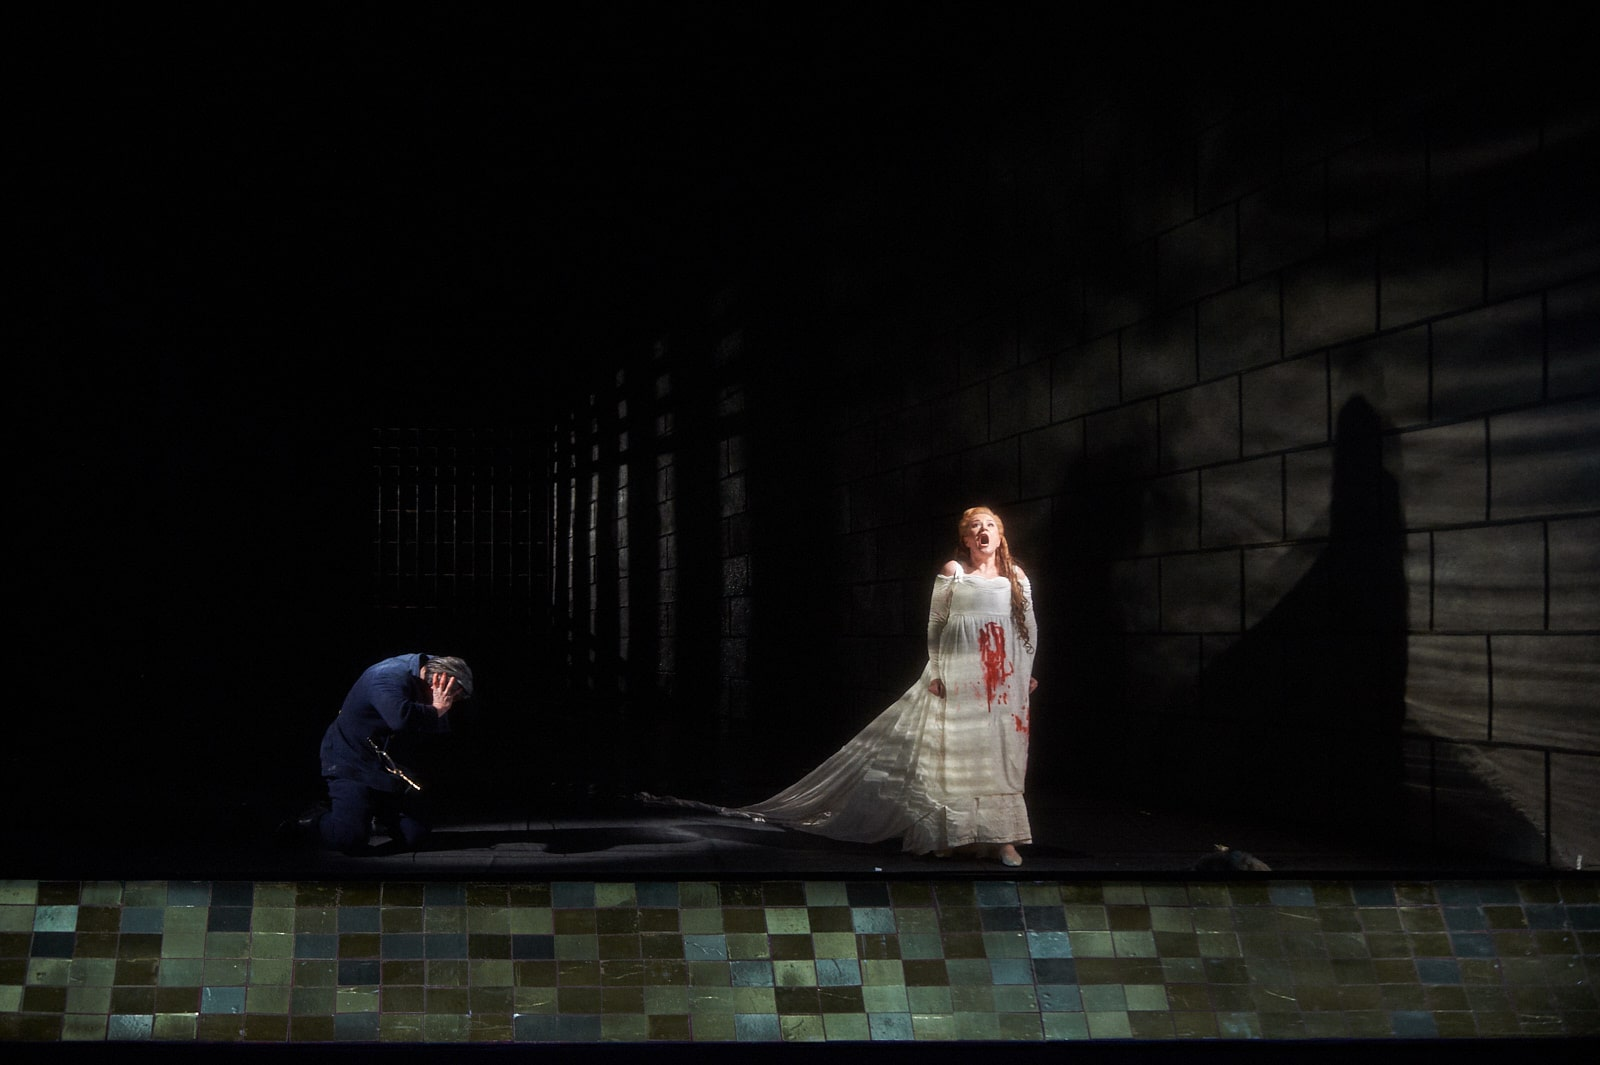 Blue-uniformed man cringes as bride in blood-stained gown sings against water-reflected light in front of blue-tiled path.